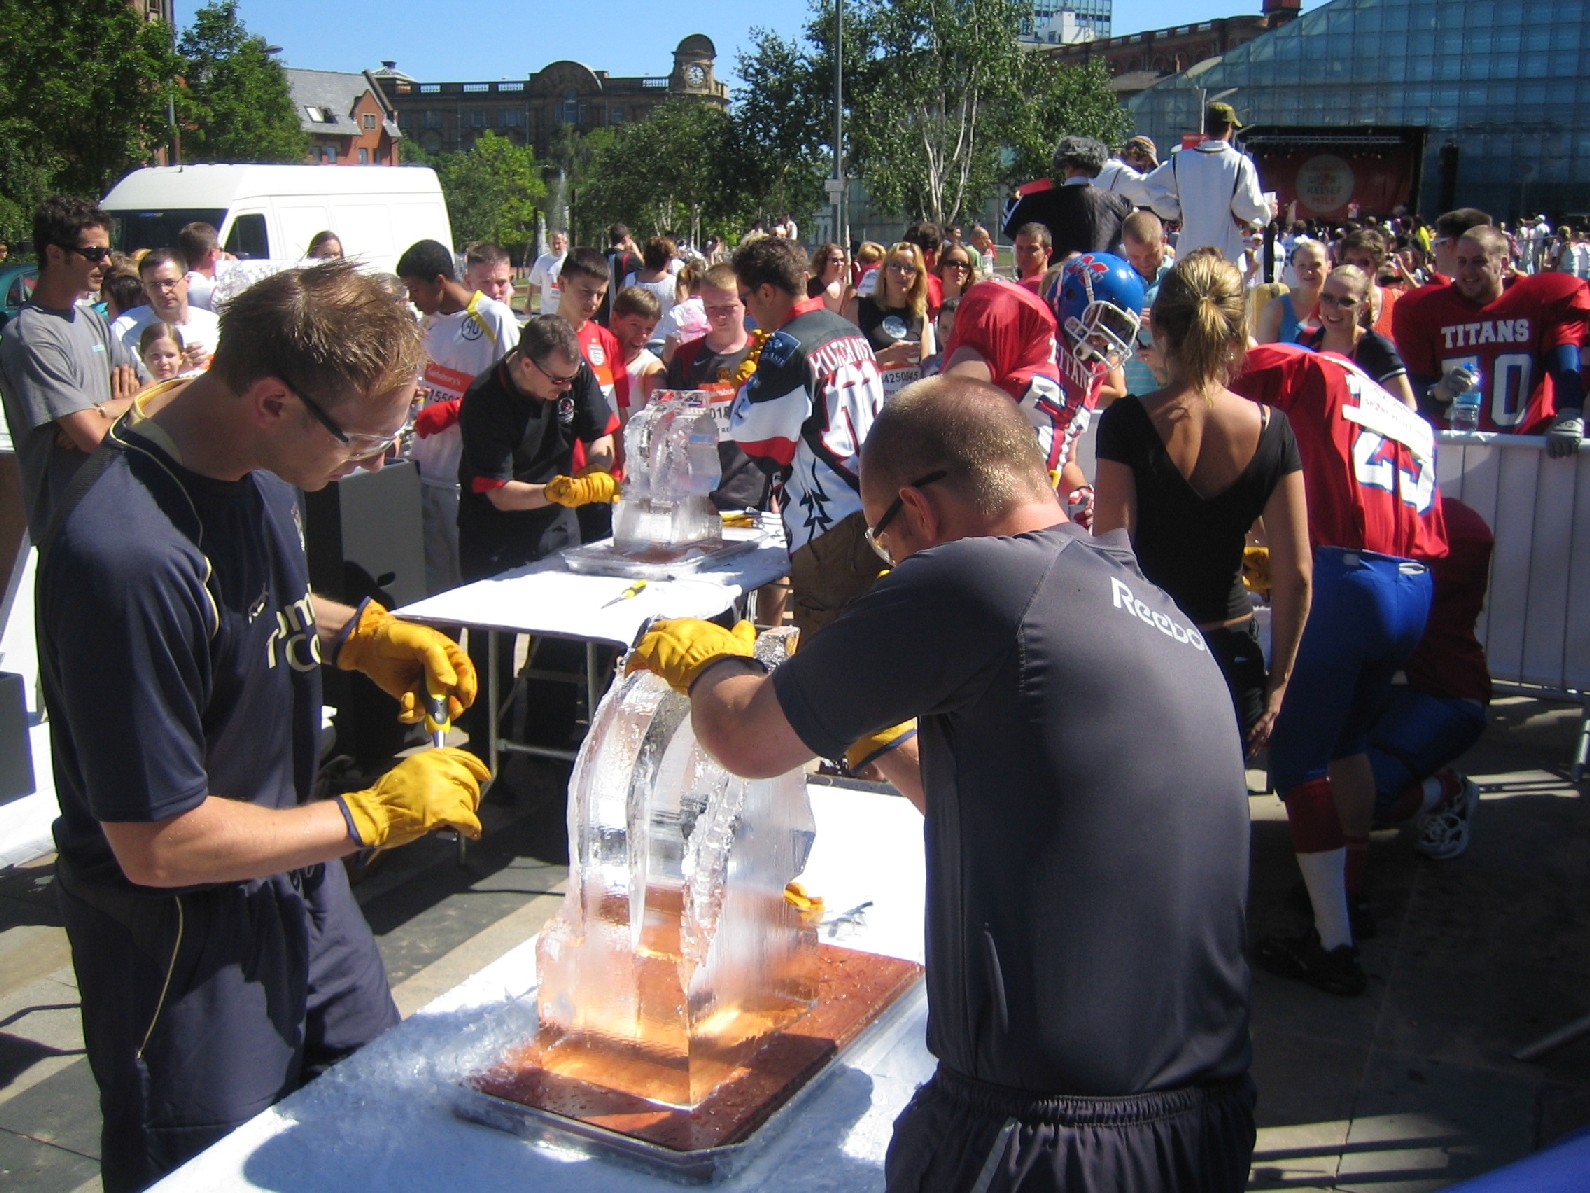 'Have a Go' ice sculpting workshop - Sport Relief